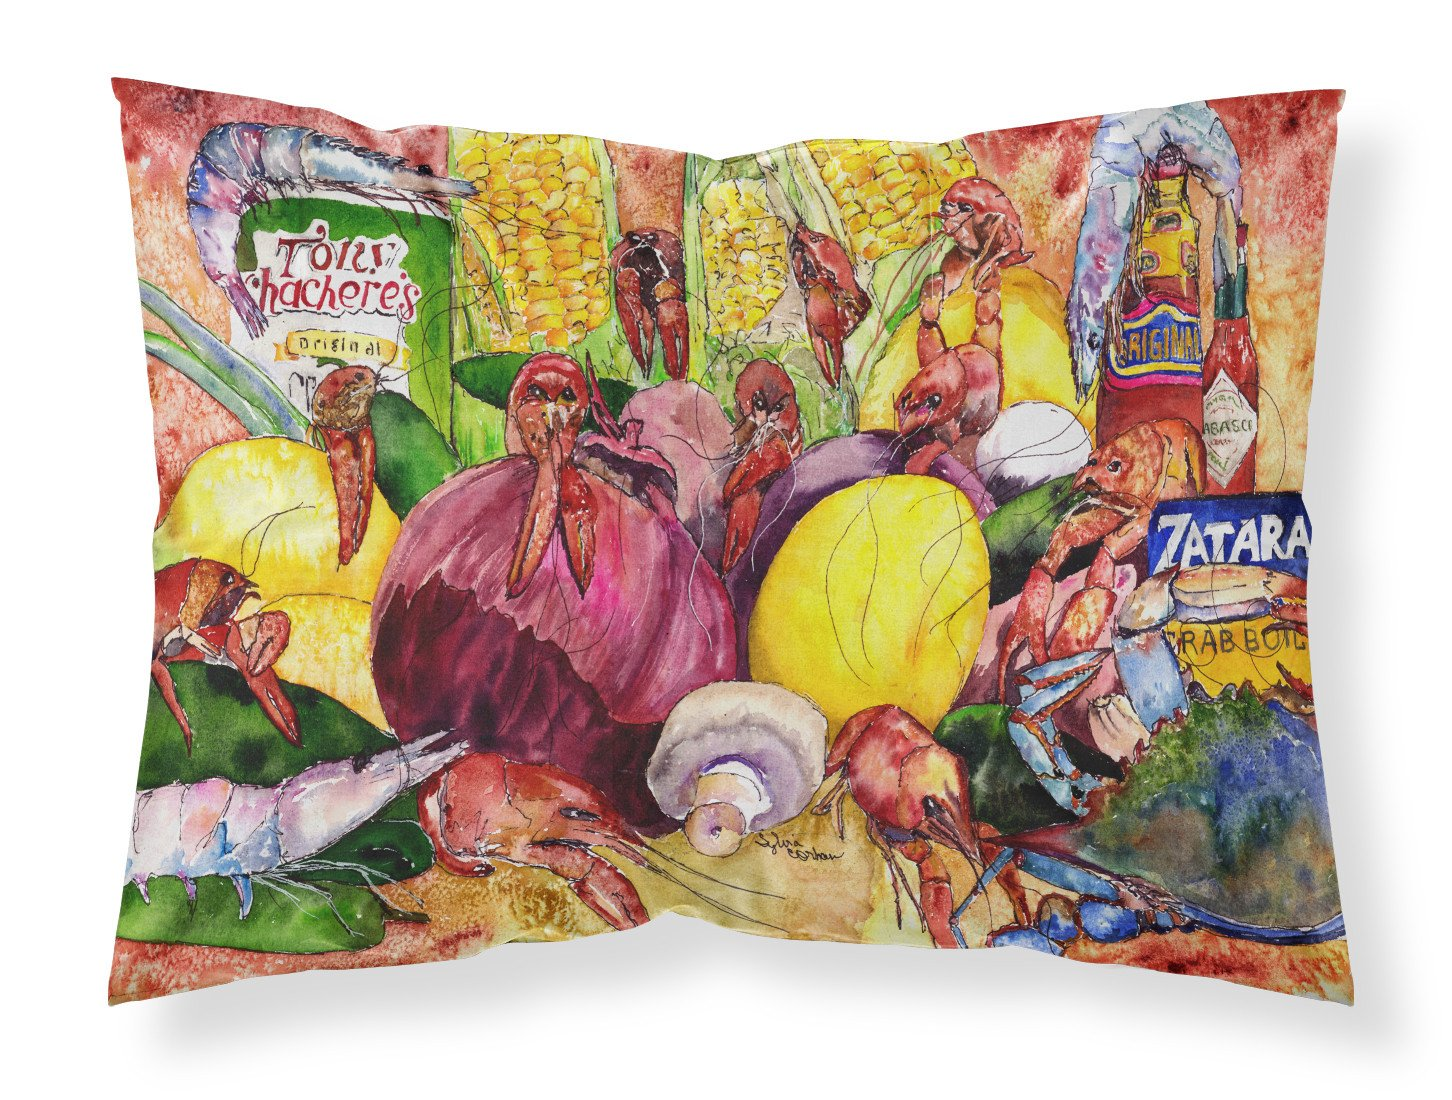 Buy this Crawfish with Spices and Corn Fabric Standard Pillowcase 8698PILLOWCASE